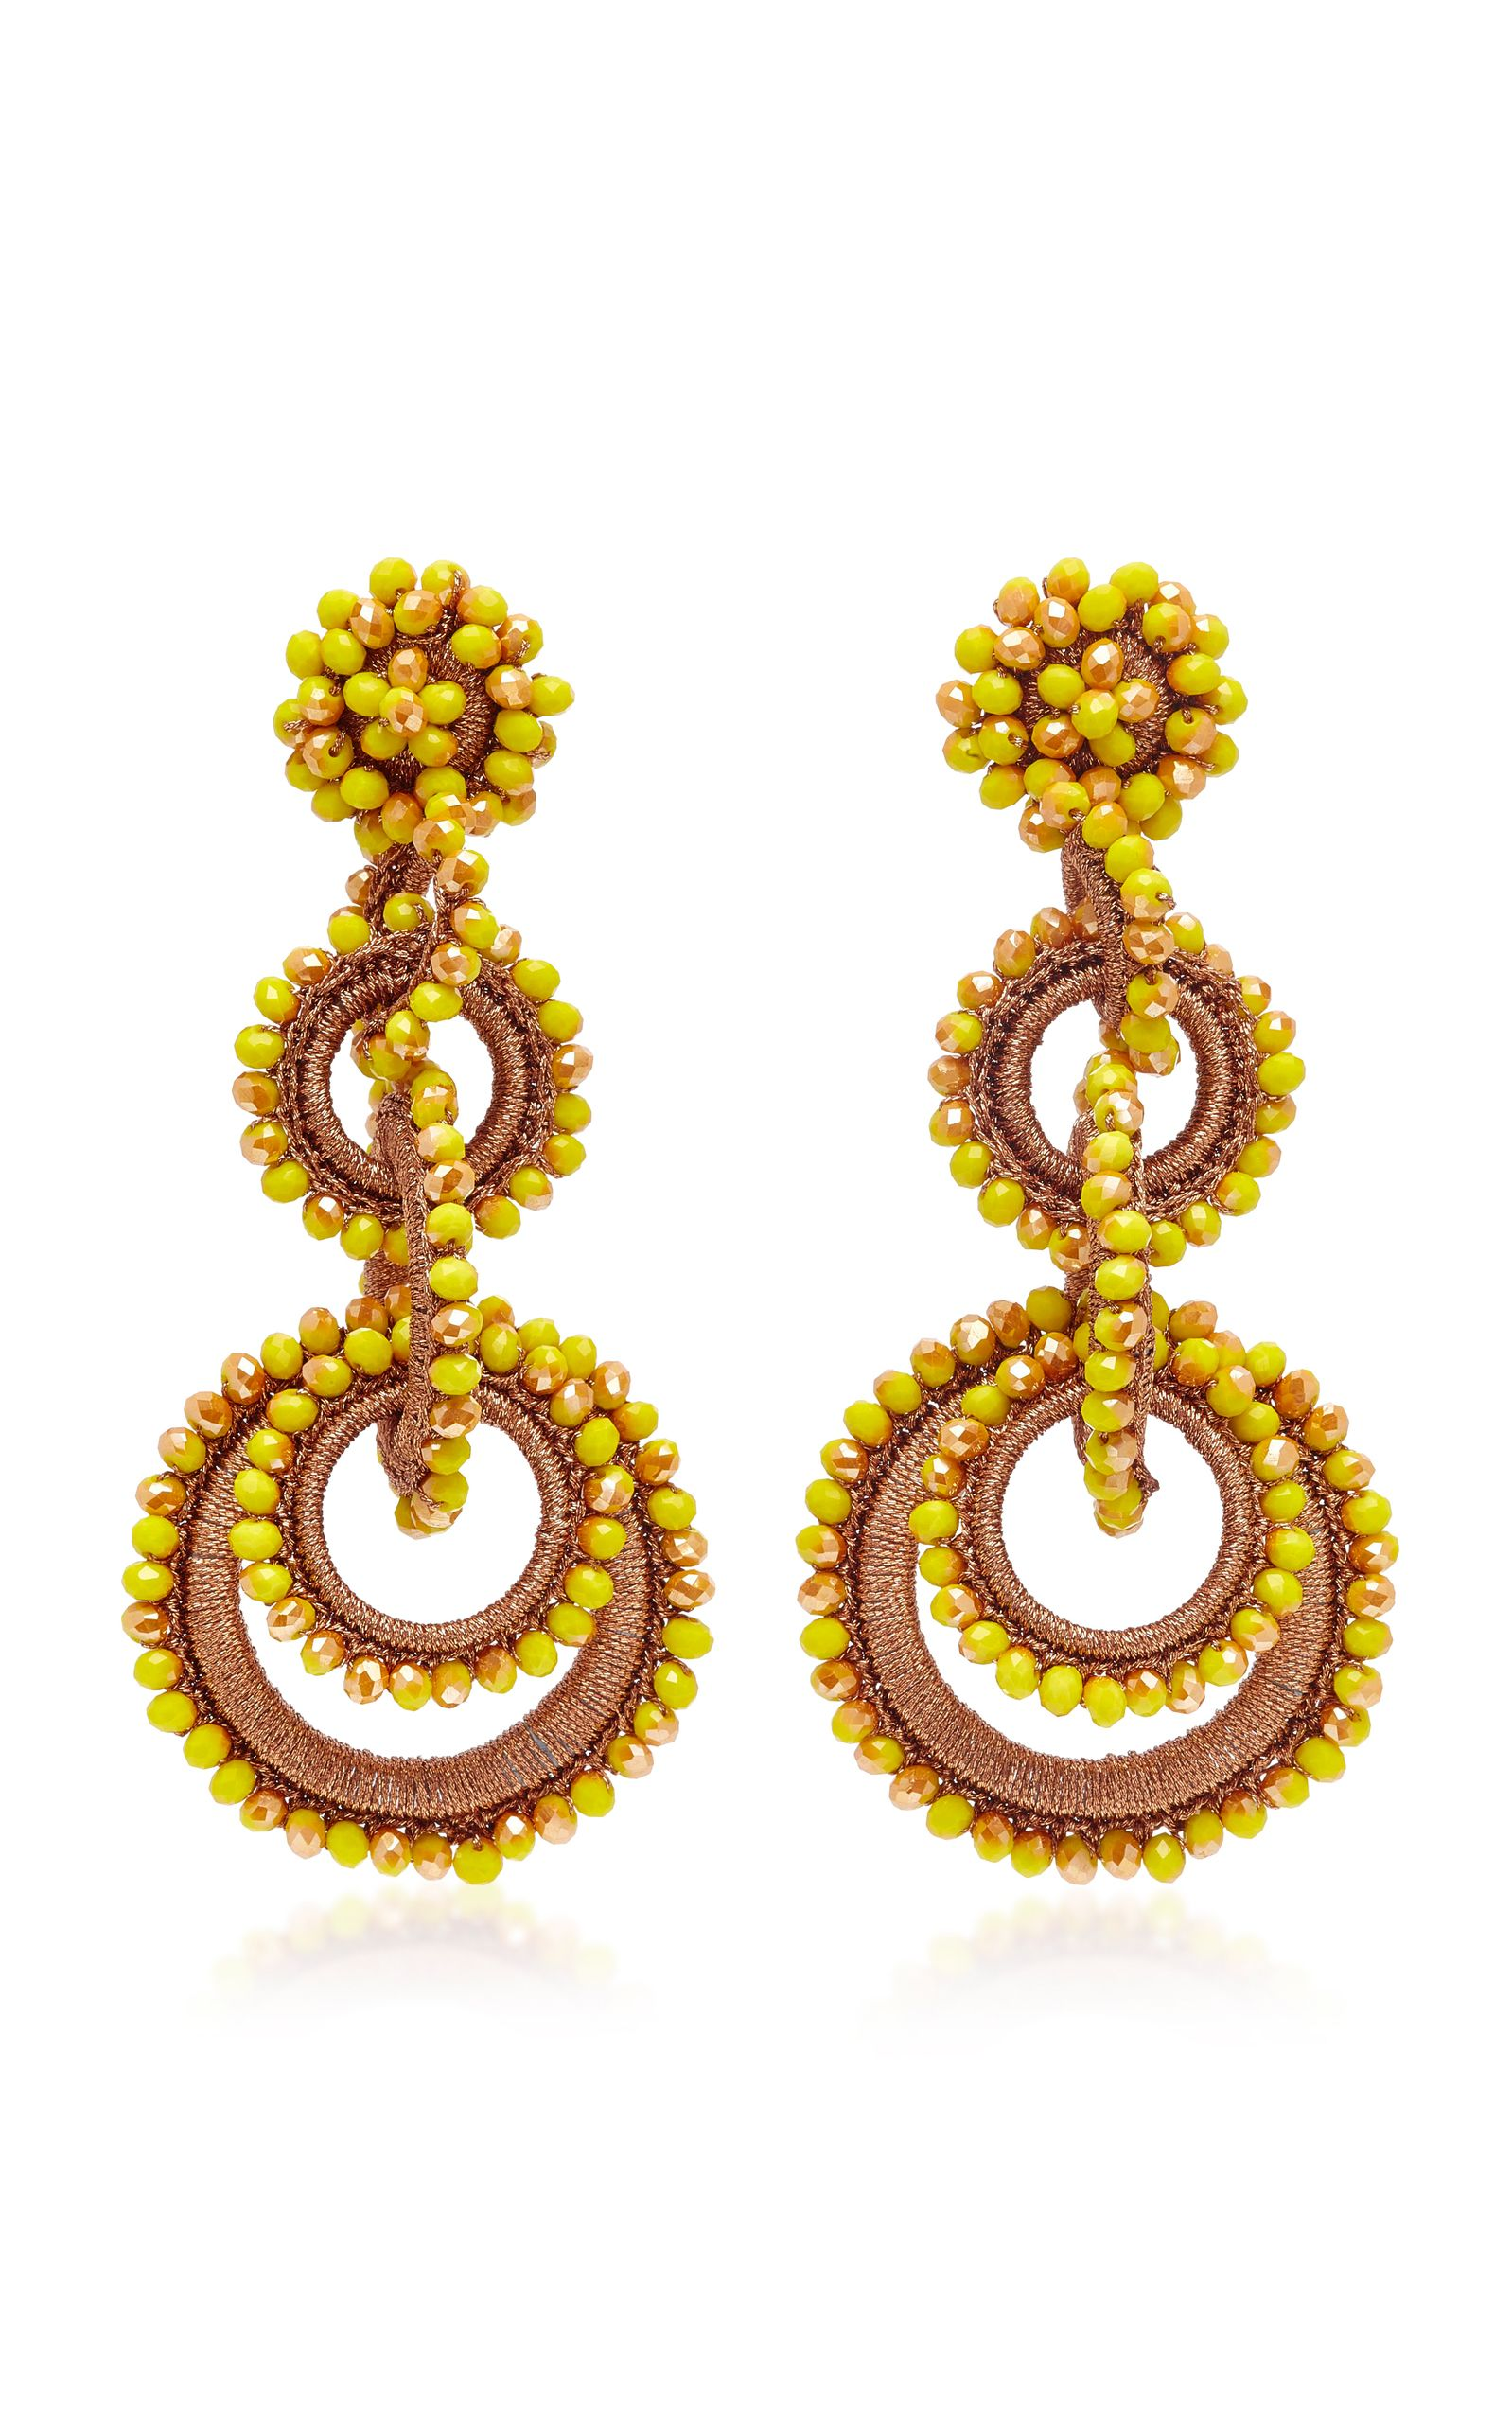 Sundrop Bead And Silk Earrings - Gold Bibi Marini Sale For Cheap Buy Cheap Best Wholesale View Online Cheap Sale Newest View Cheap Online mvkag3Wzs